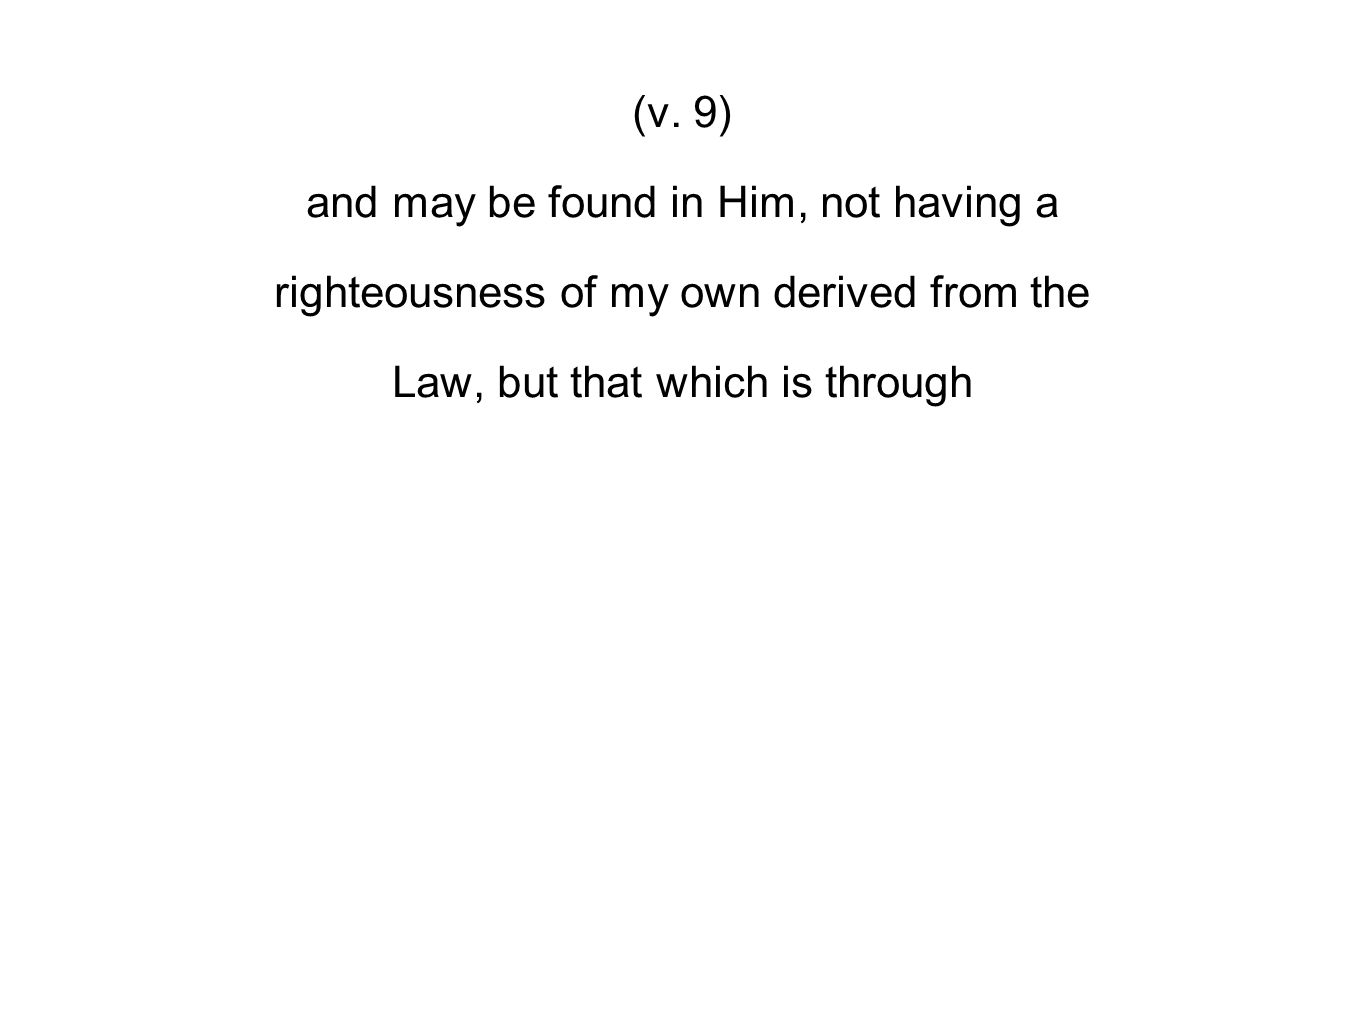 (v. 9) and may be found in Him, not having a righteousness of my own derived from the Law, but that which is through